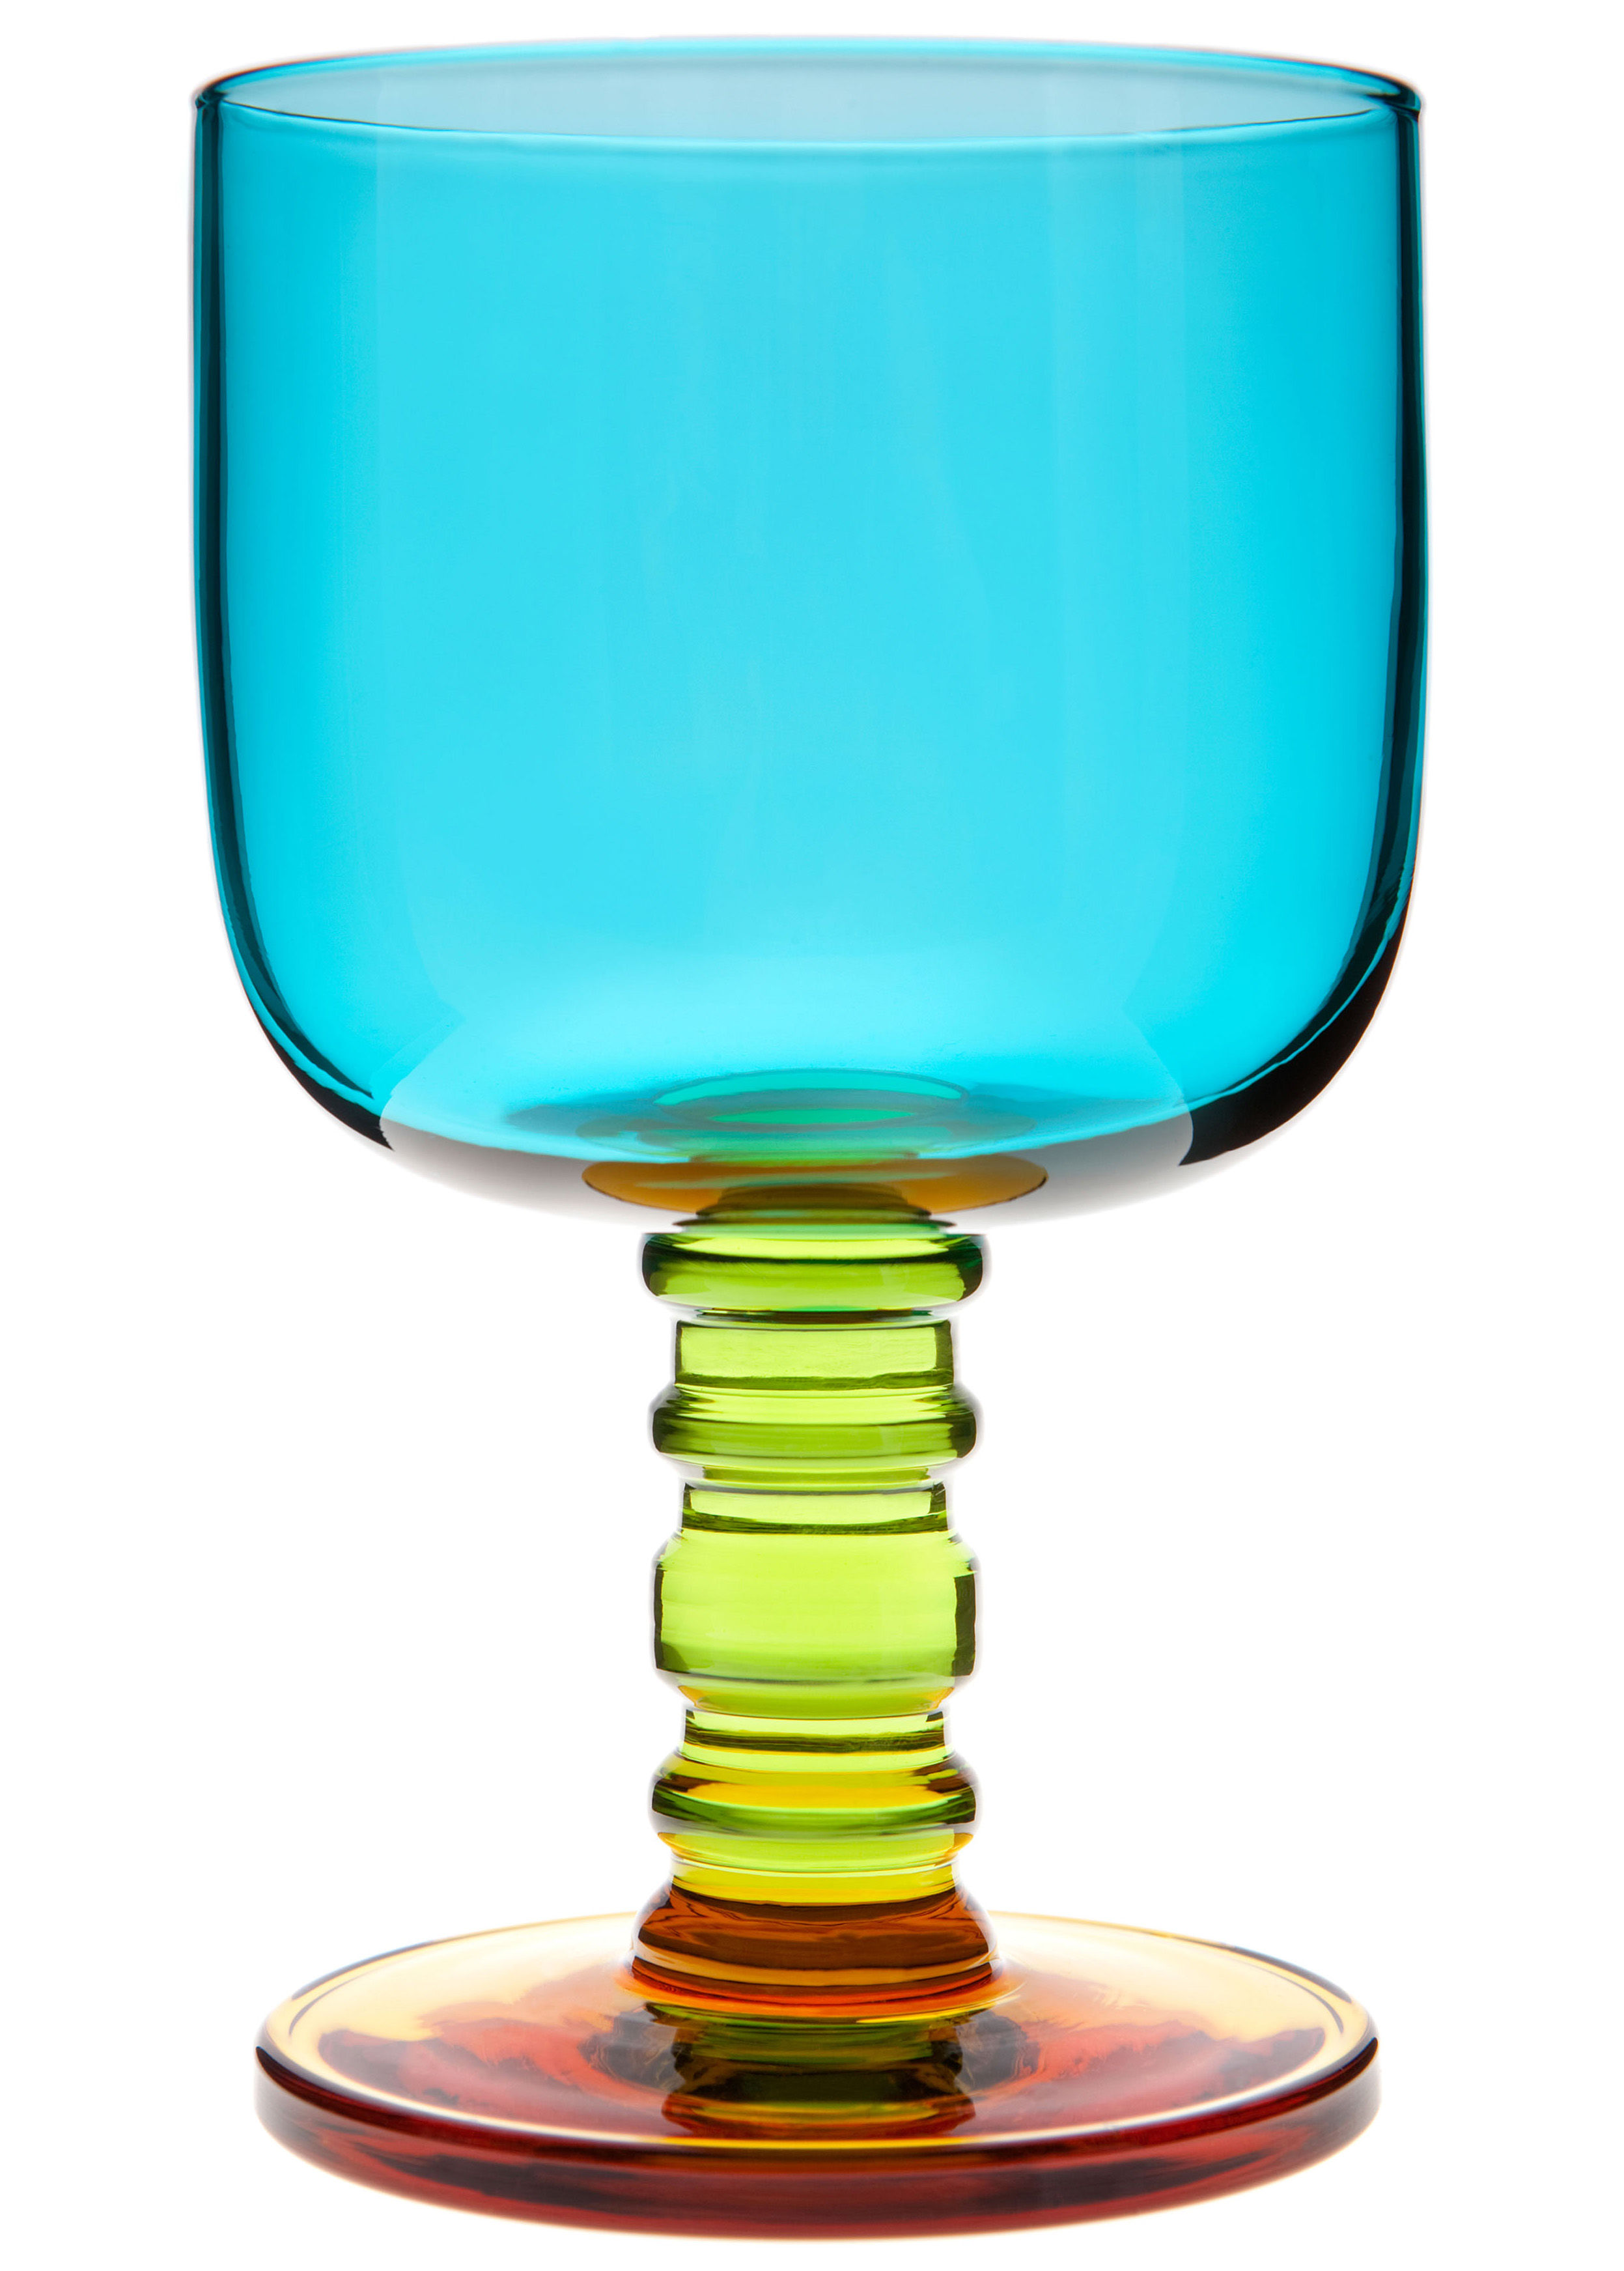 Tableware - Wine Glasses & Glassware - Sukat Makkaralla Wine glass by Marimekko - Sukat Makkaralla - Turquoise, green, yellow - Mouth blown glass